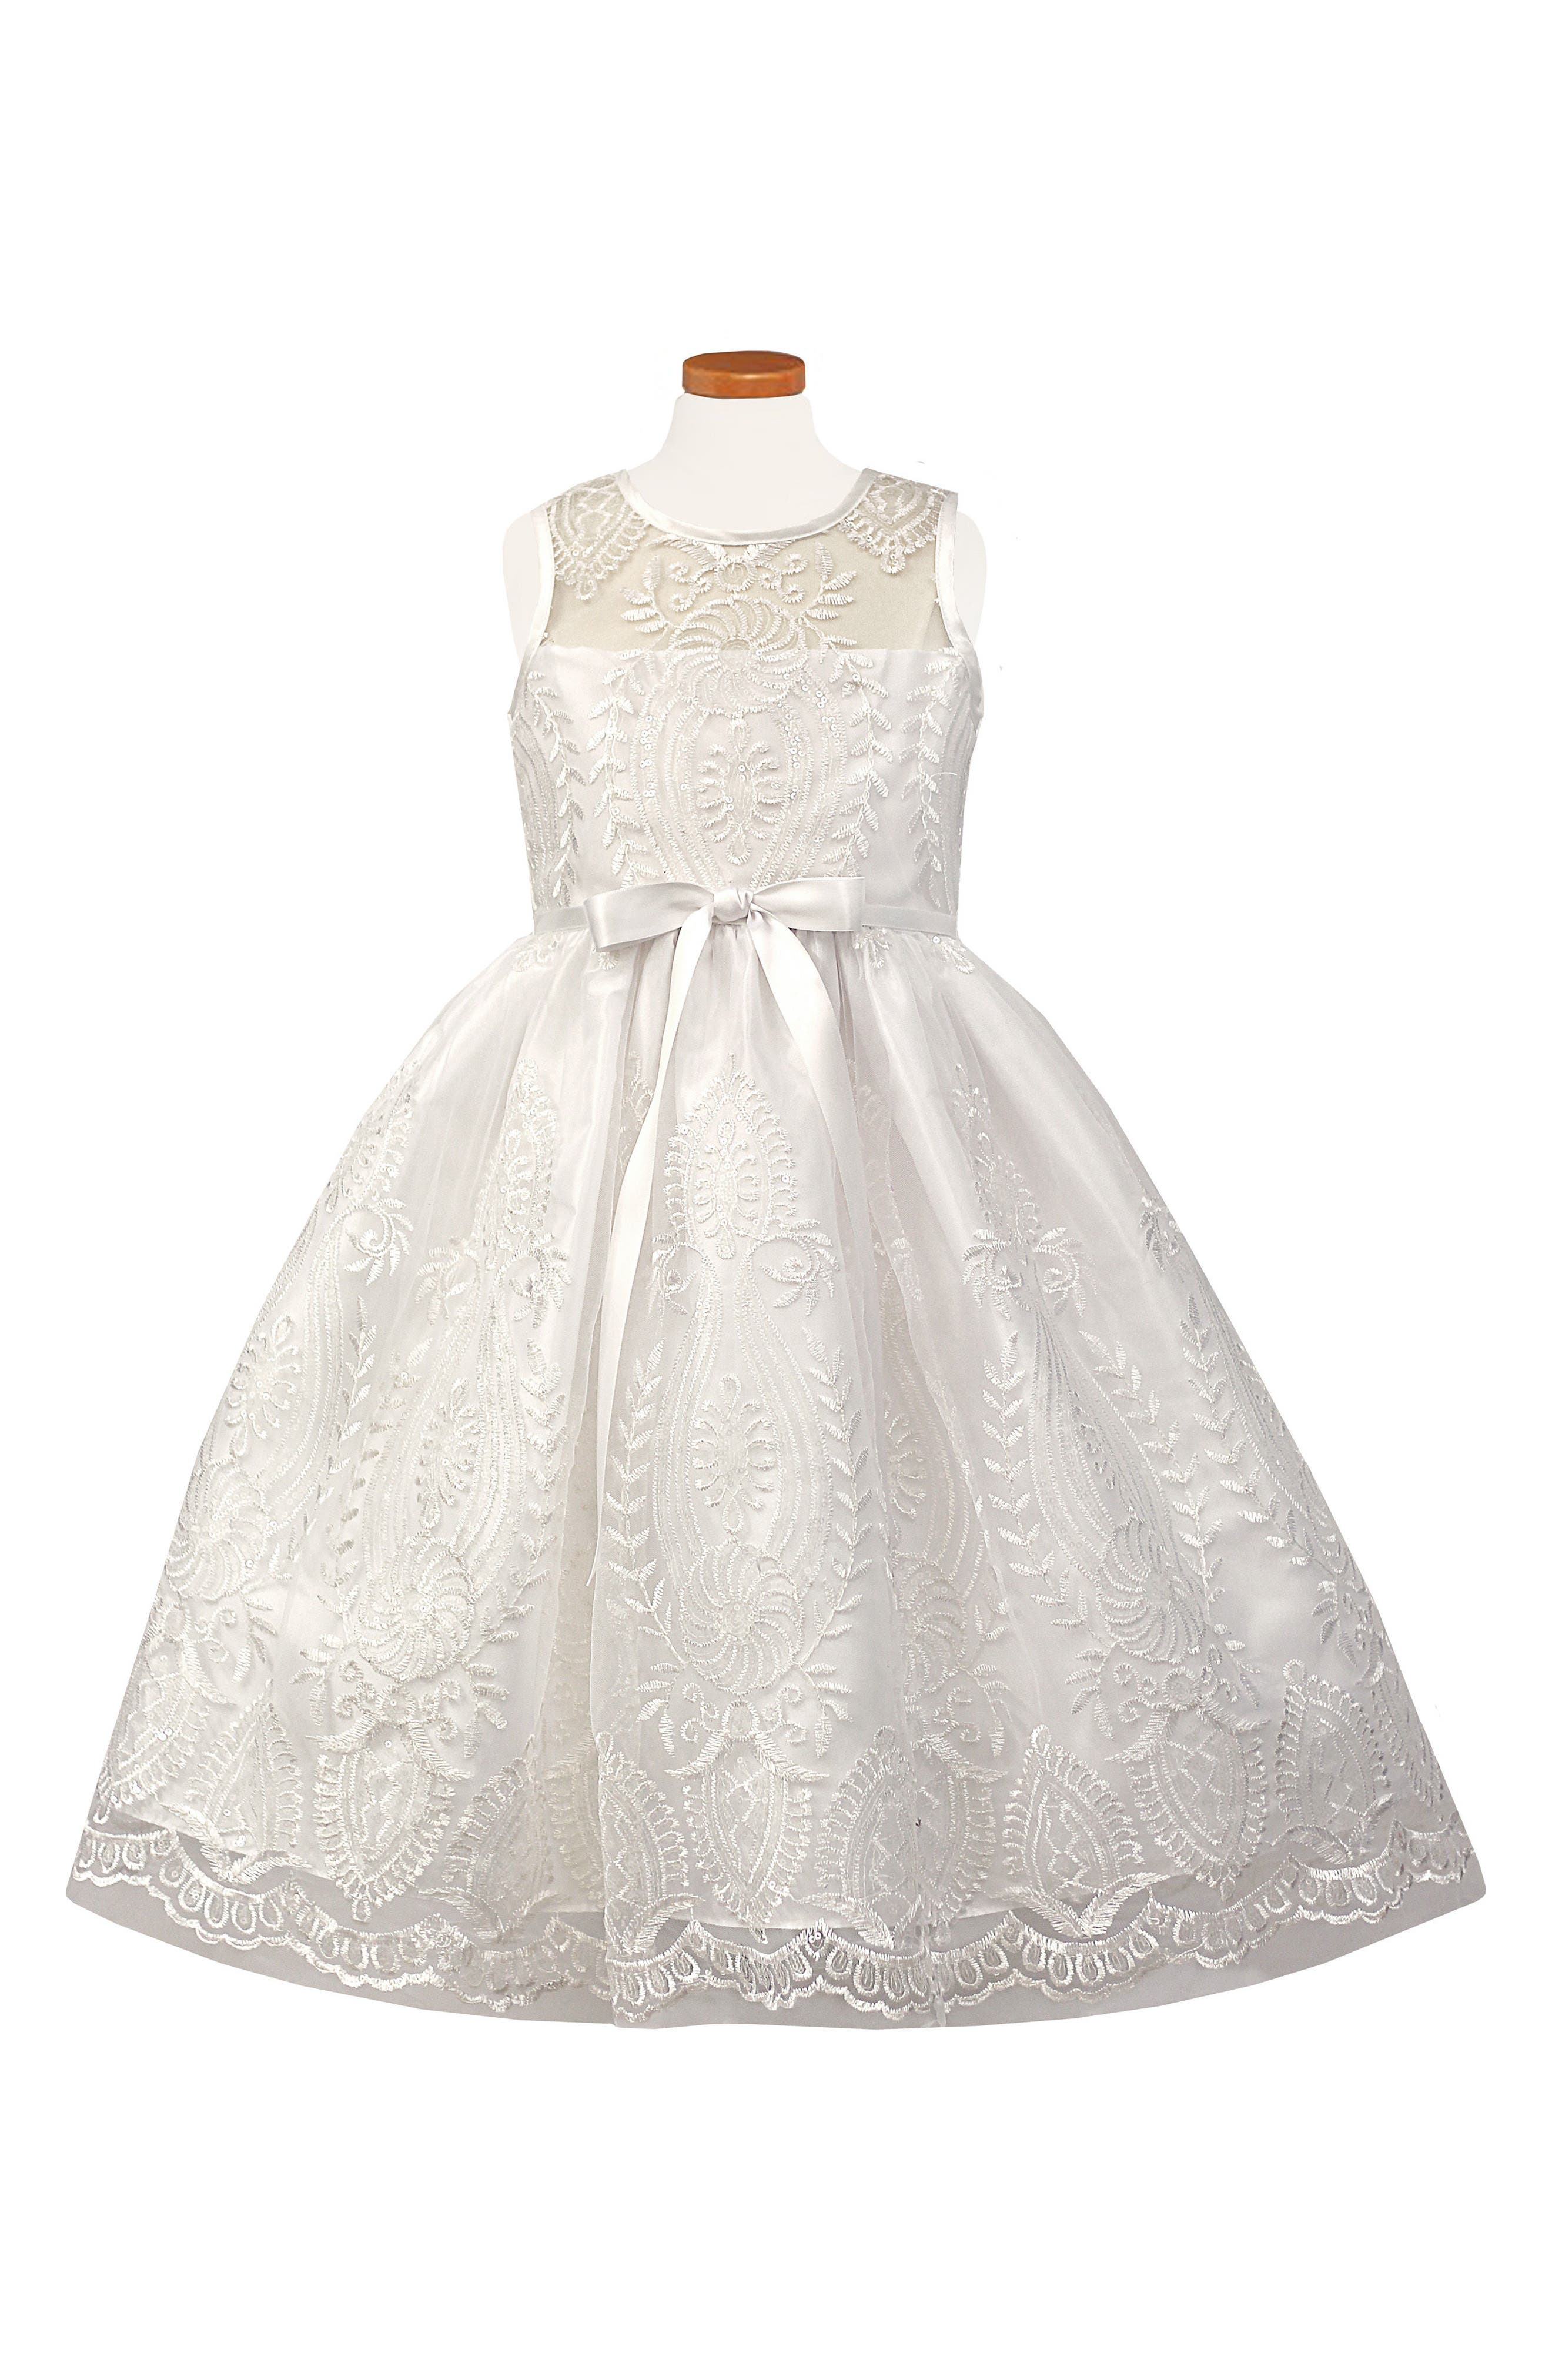 SORBET, Embroidered First Communion Dress, Main thumbnail 1, color, WHITE